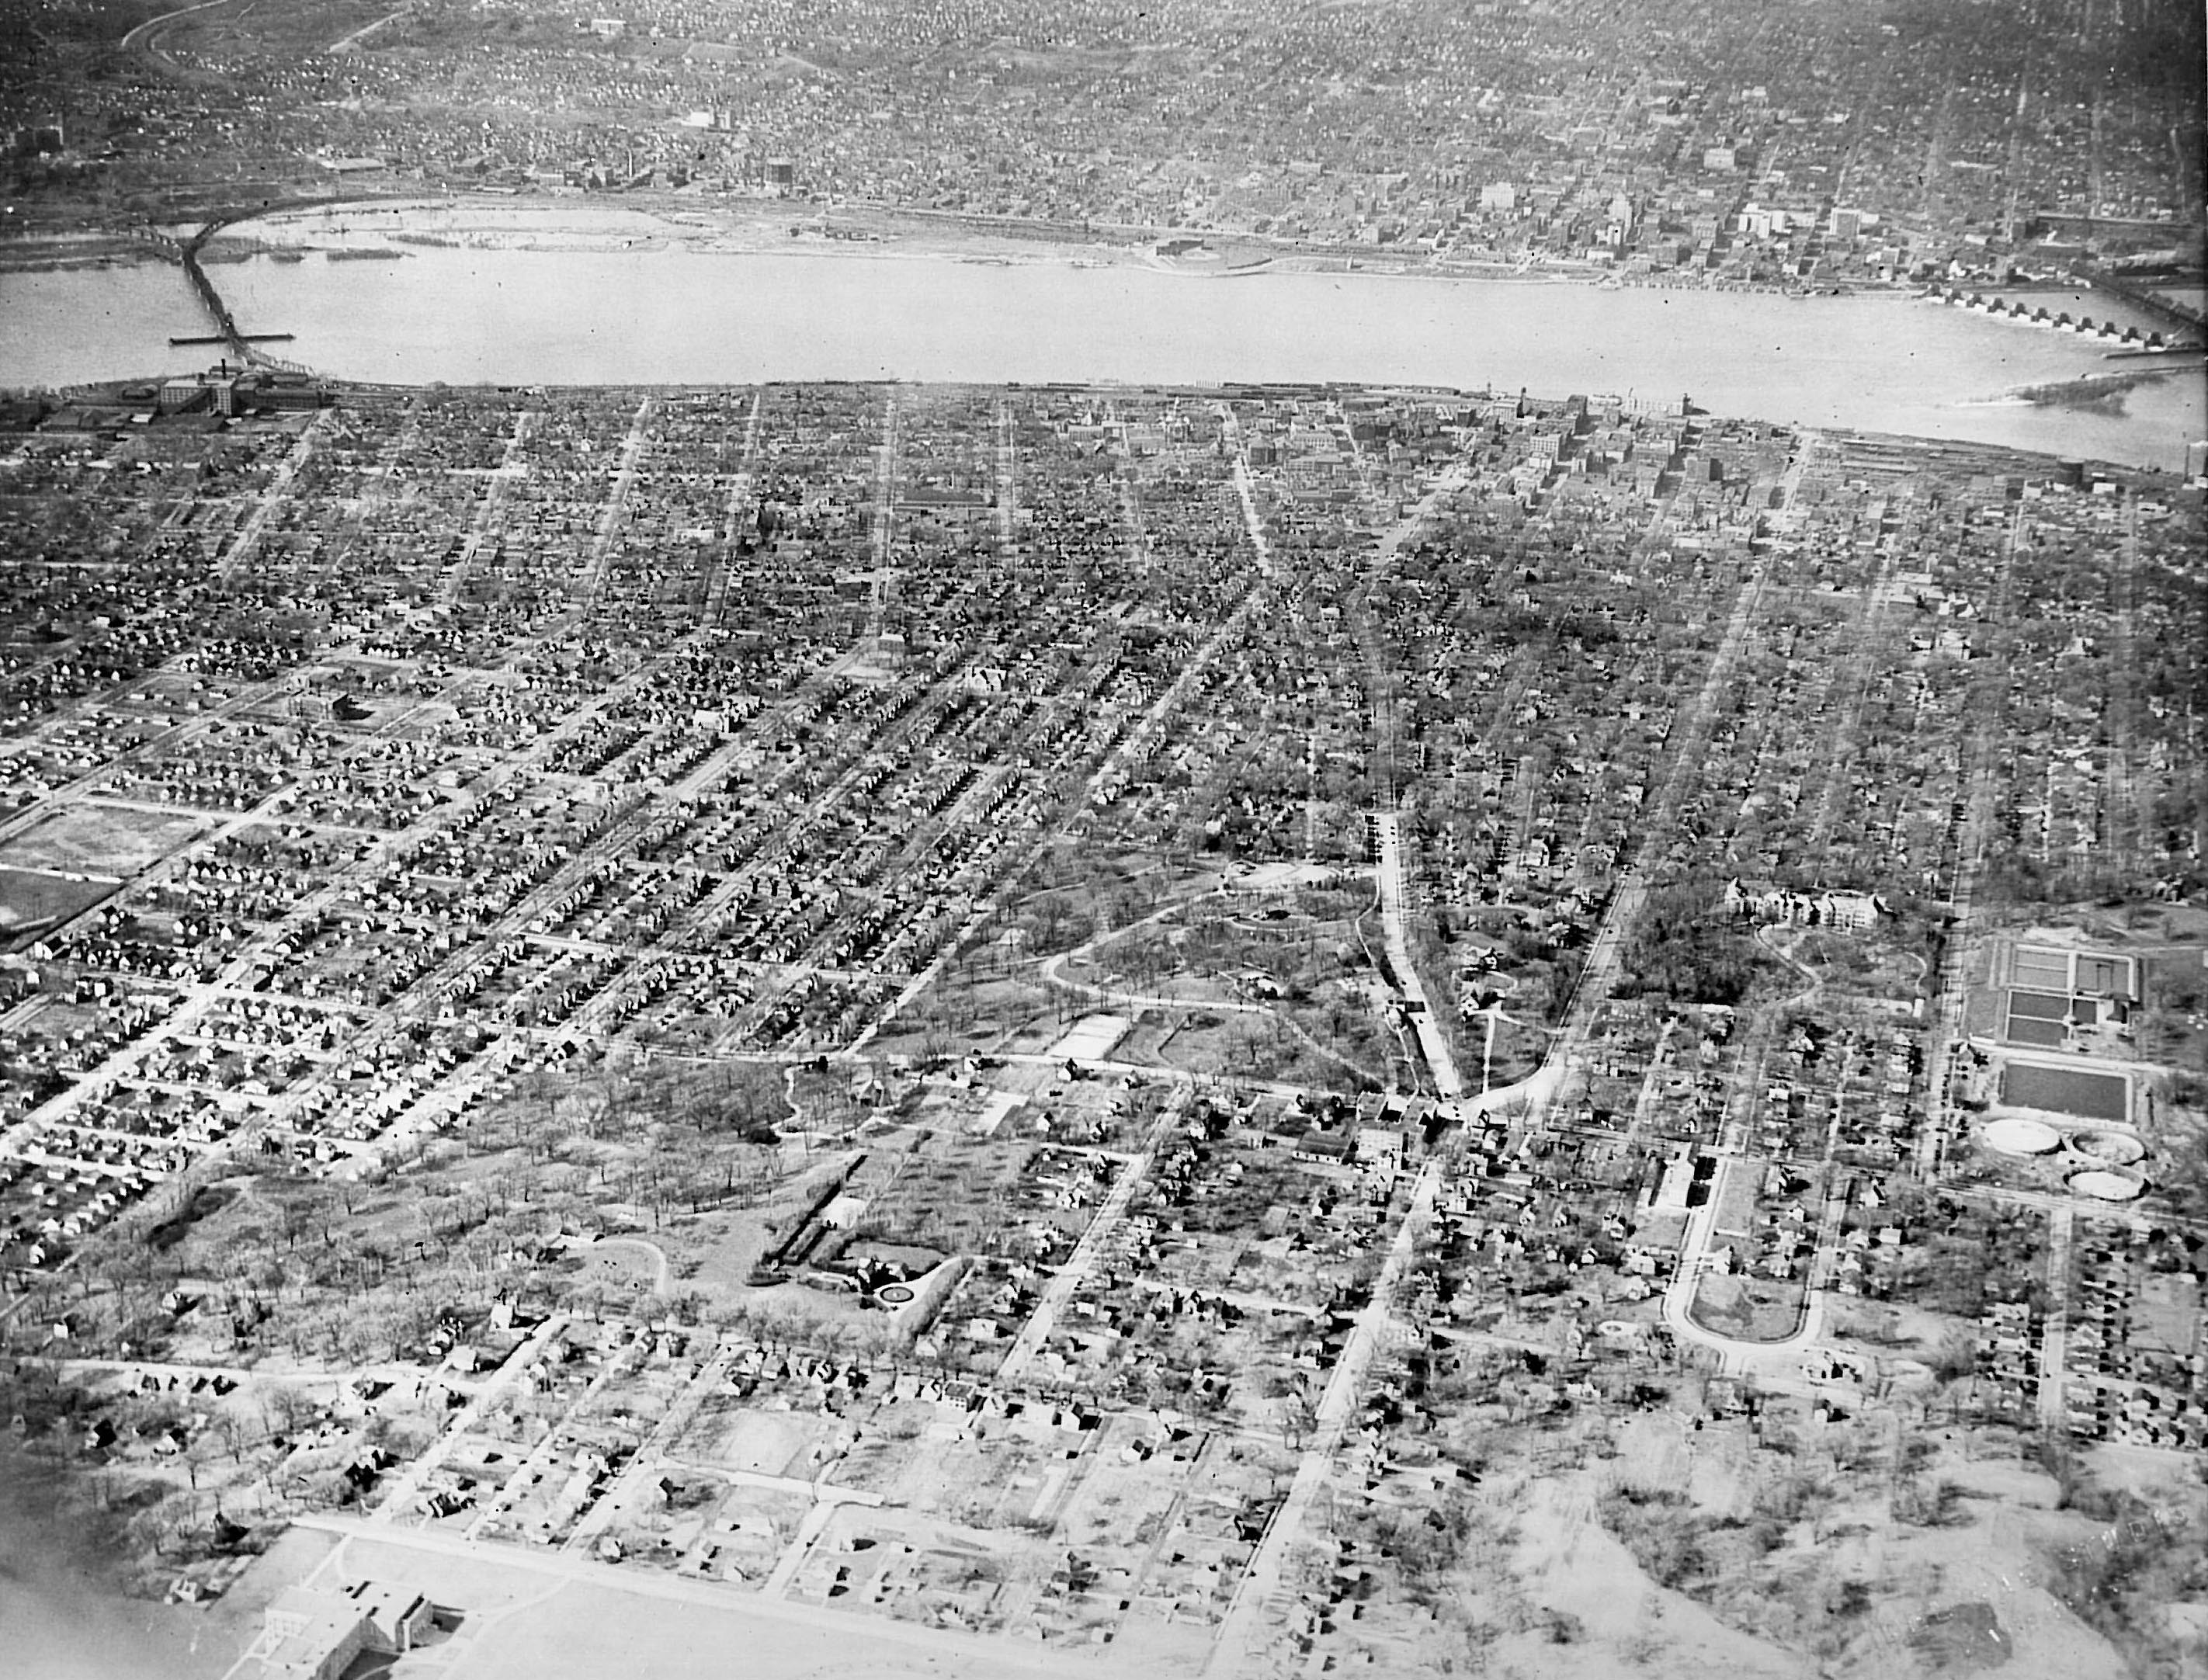 Aerial view prior to 1939